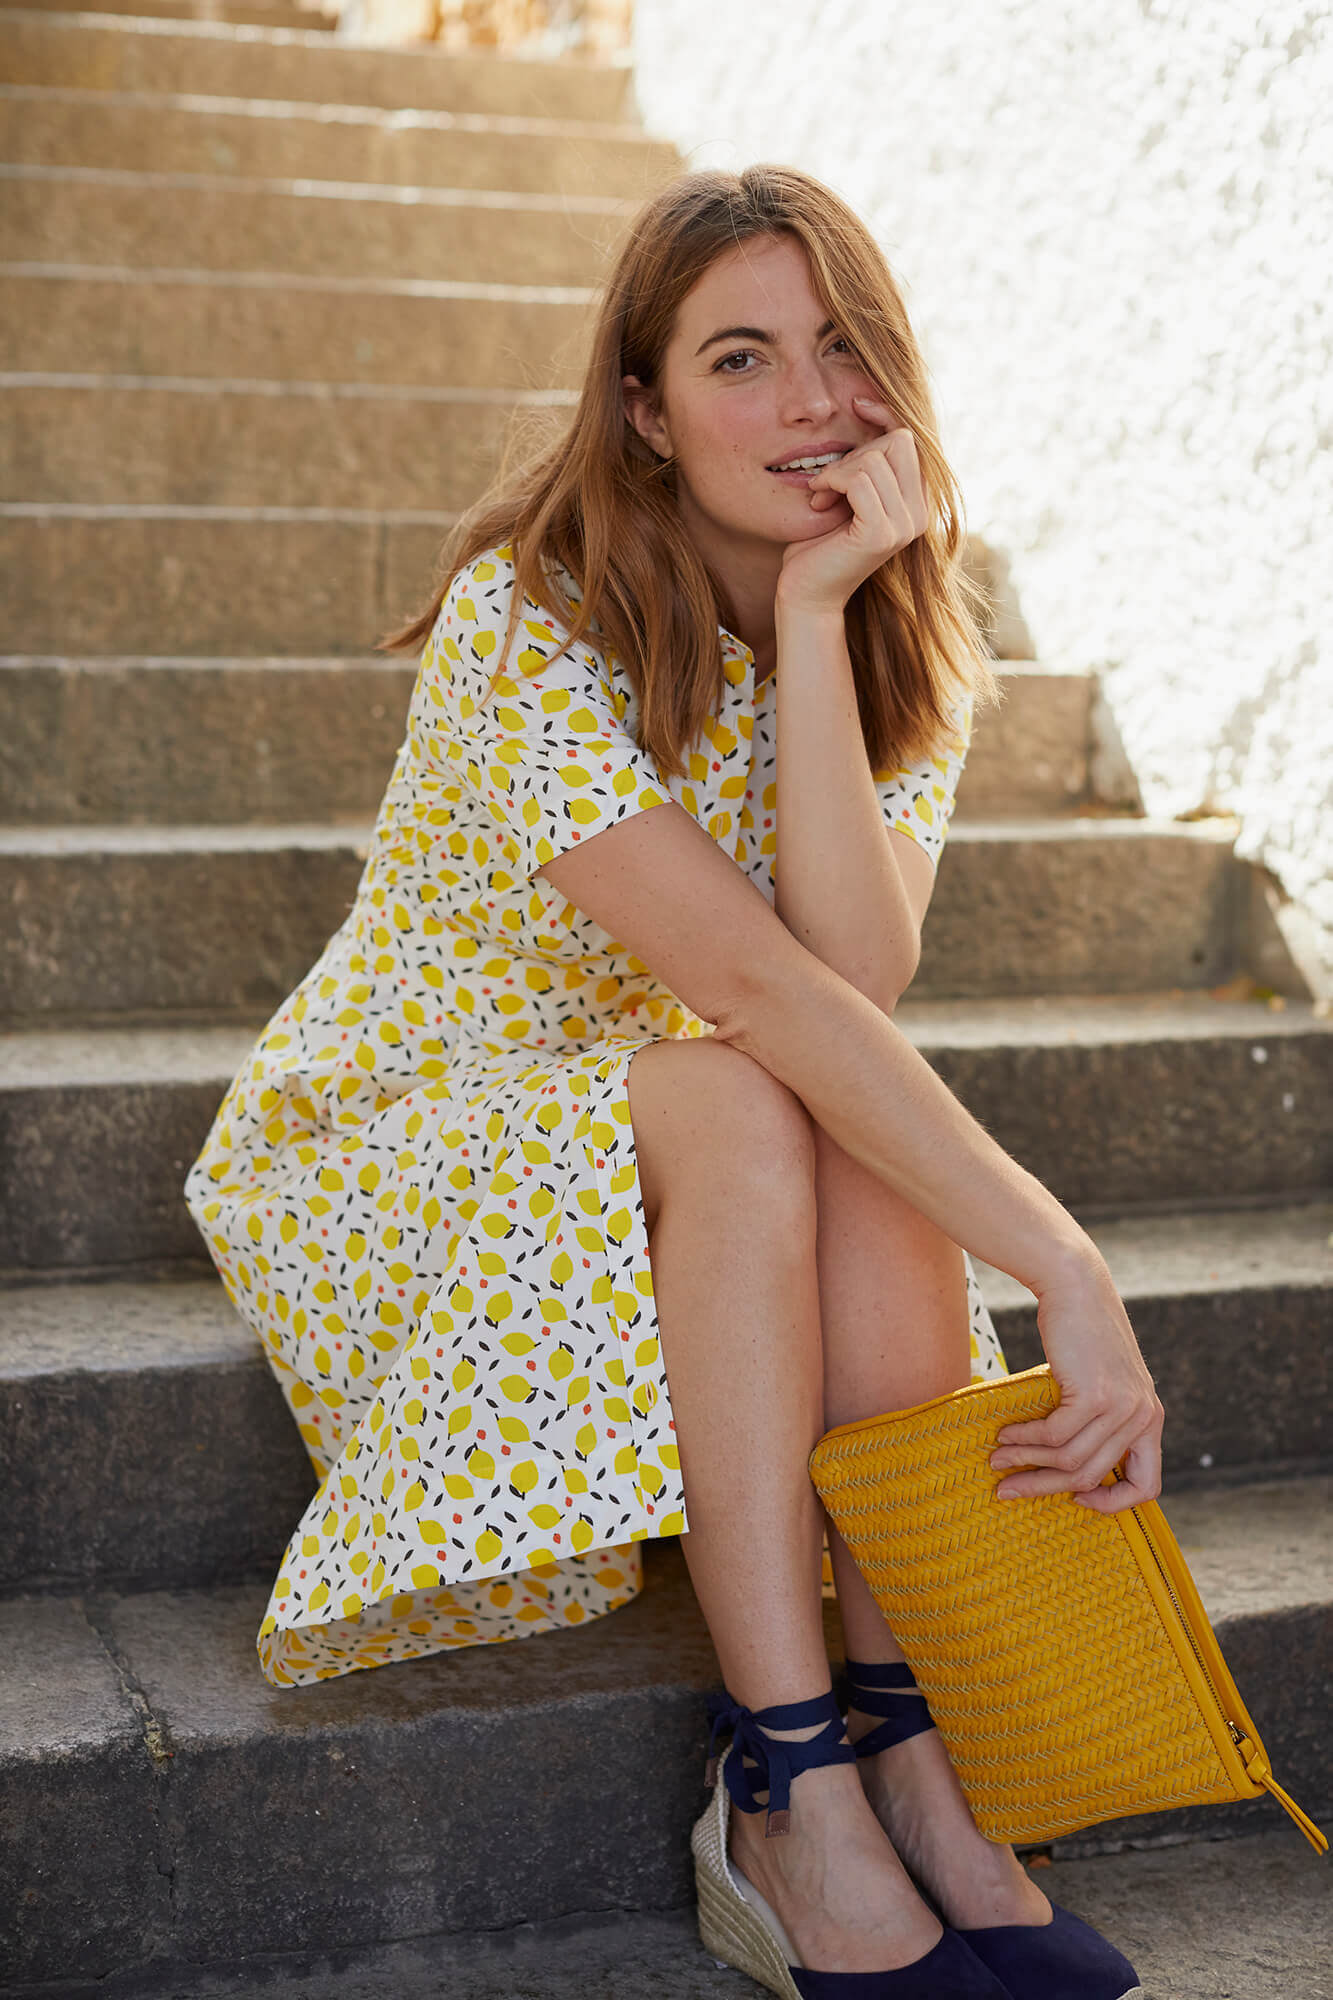 Girl in a yellow dress and bag sitting on a stairs